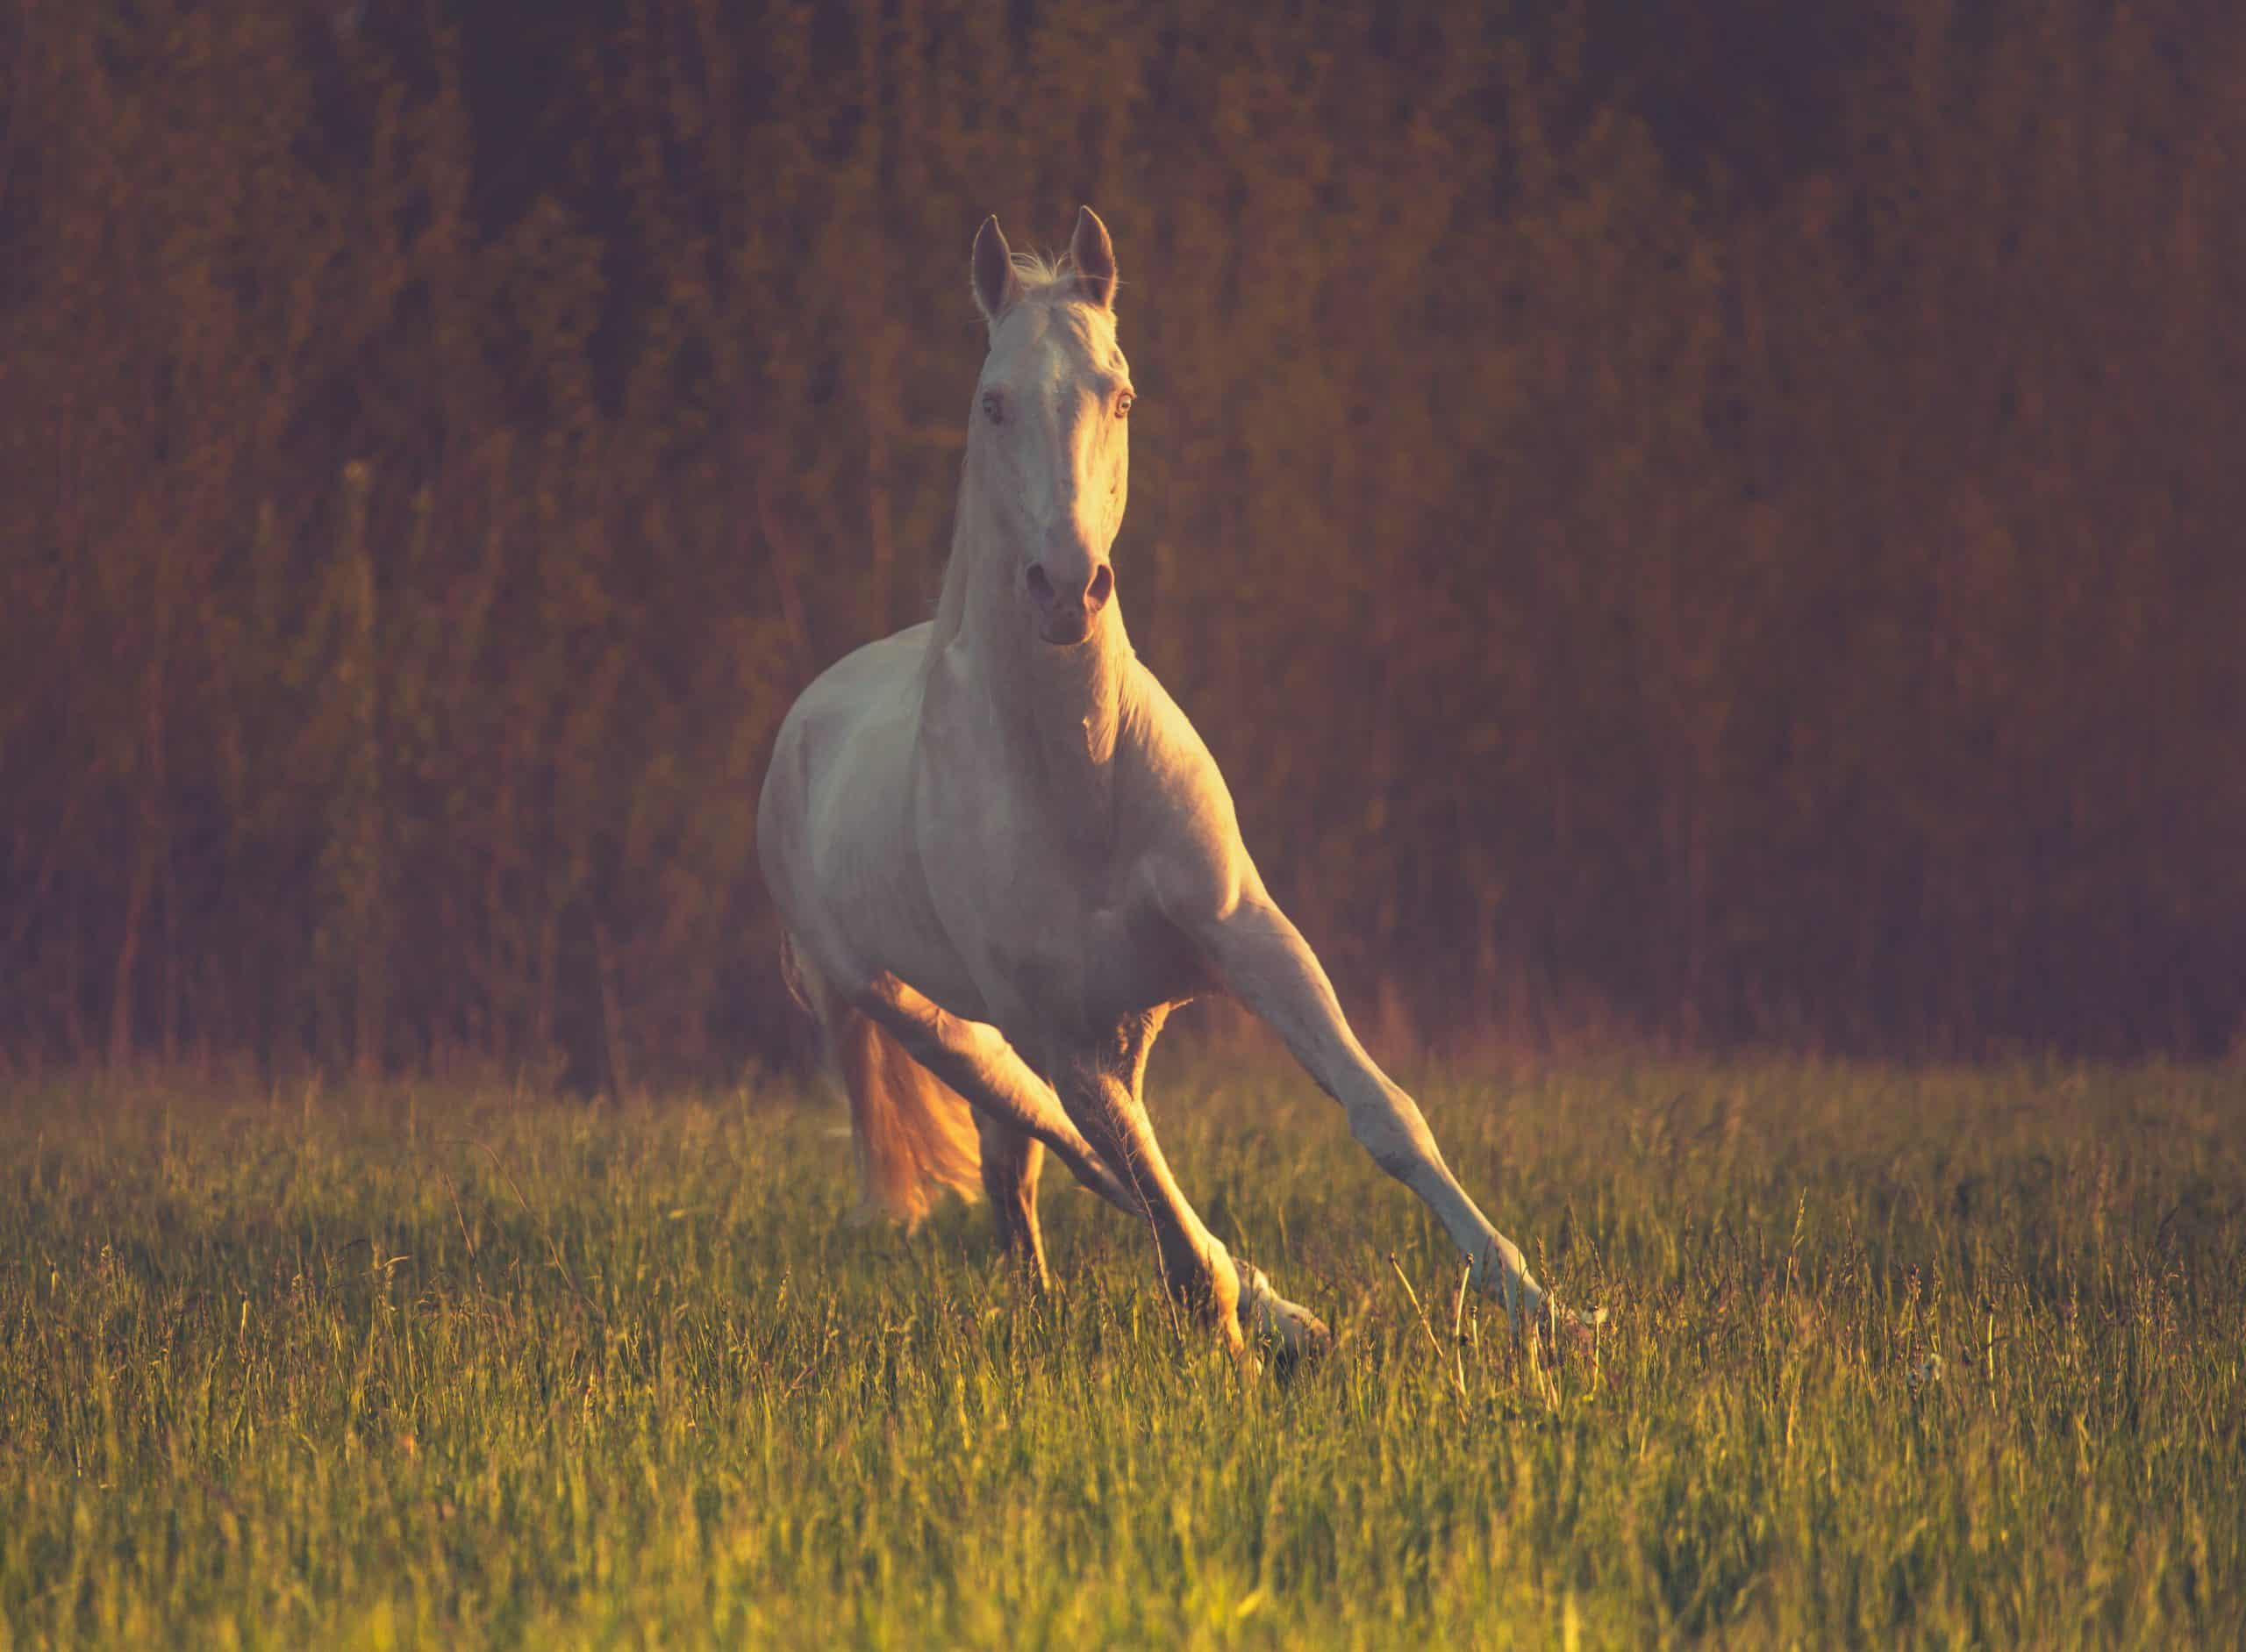 Cremello horse runs on the grass on dark forest background